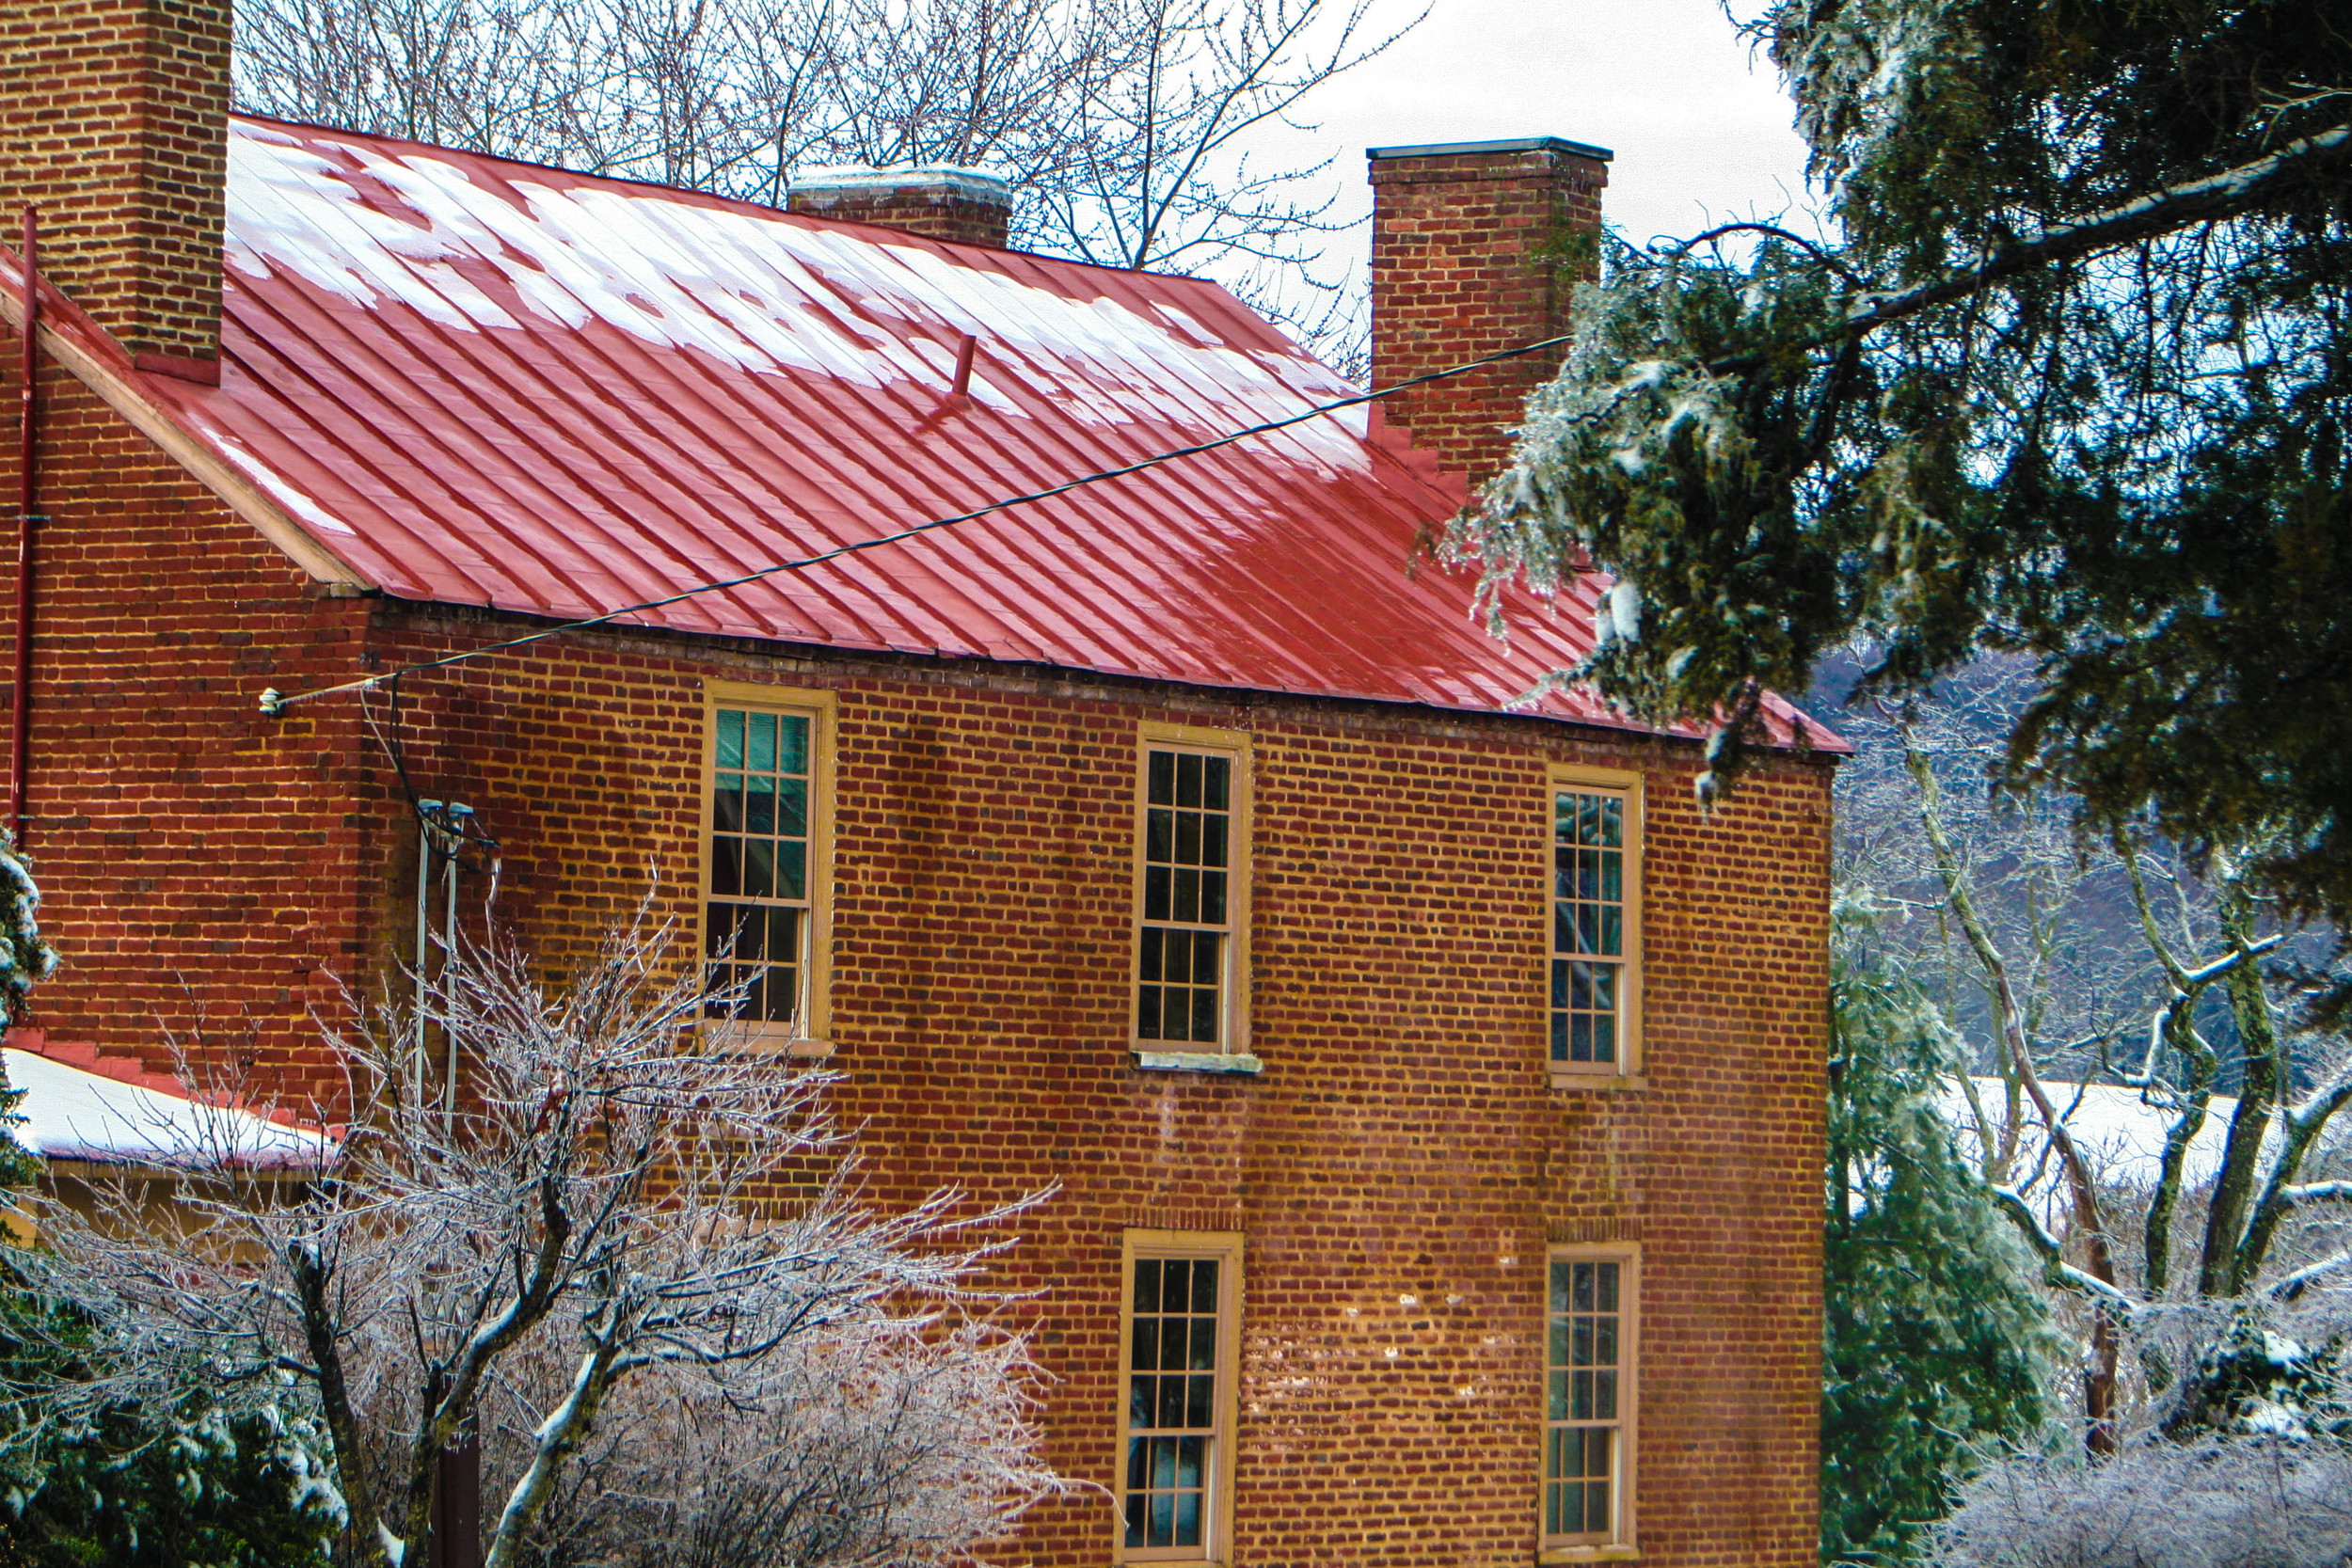 Icy frontal view of the Inn